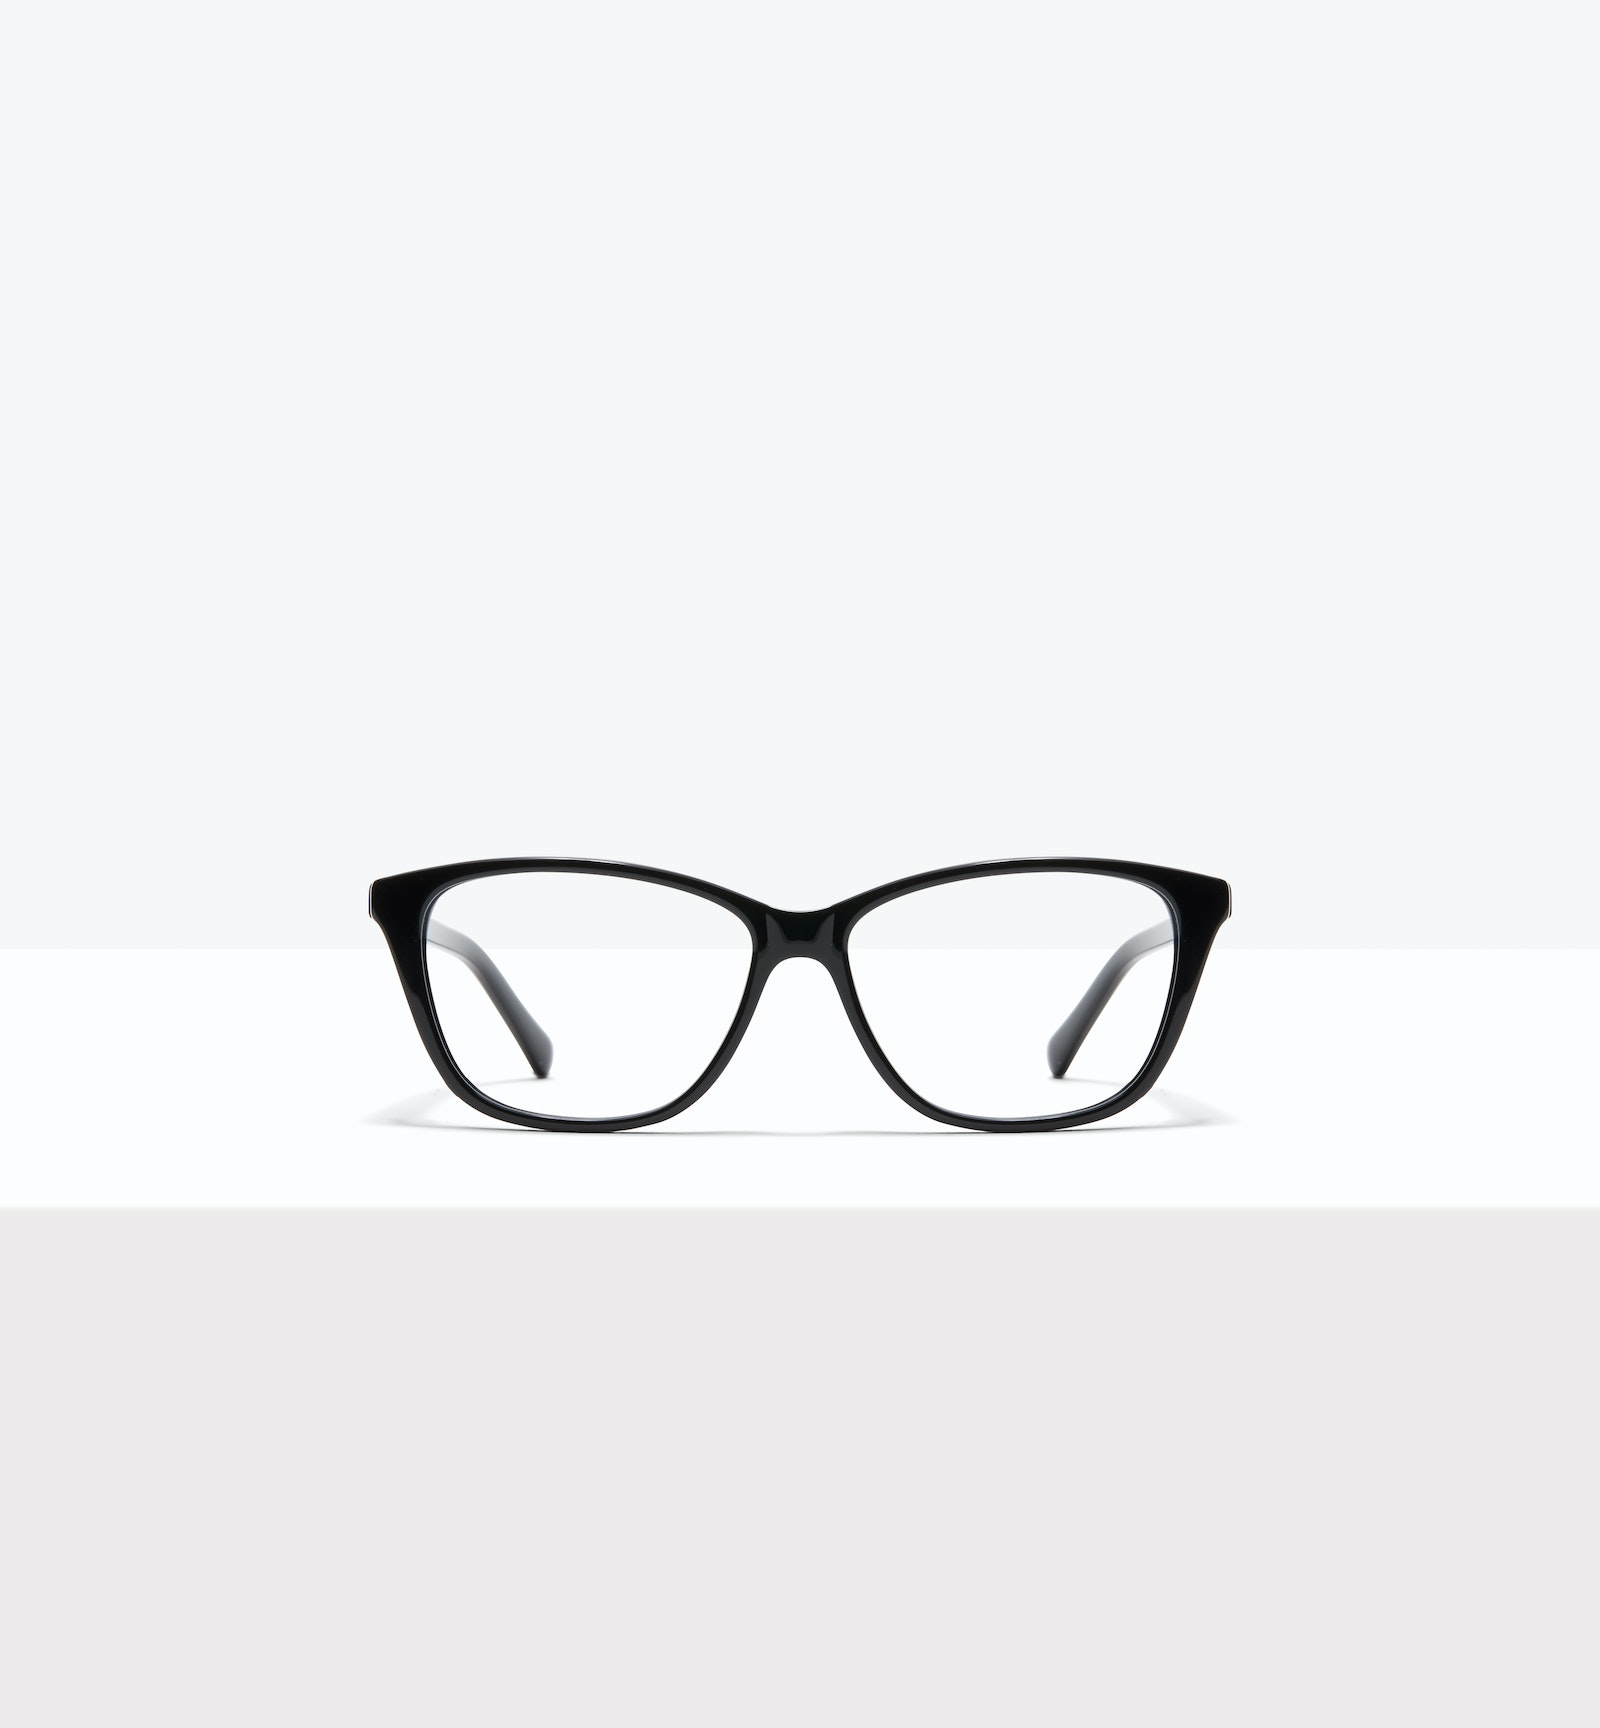 Affordable Fashion Glasses Cat Eye Rectangle Eyeglasses Women Myrtle M Black